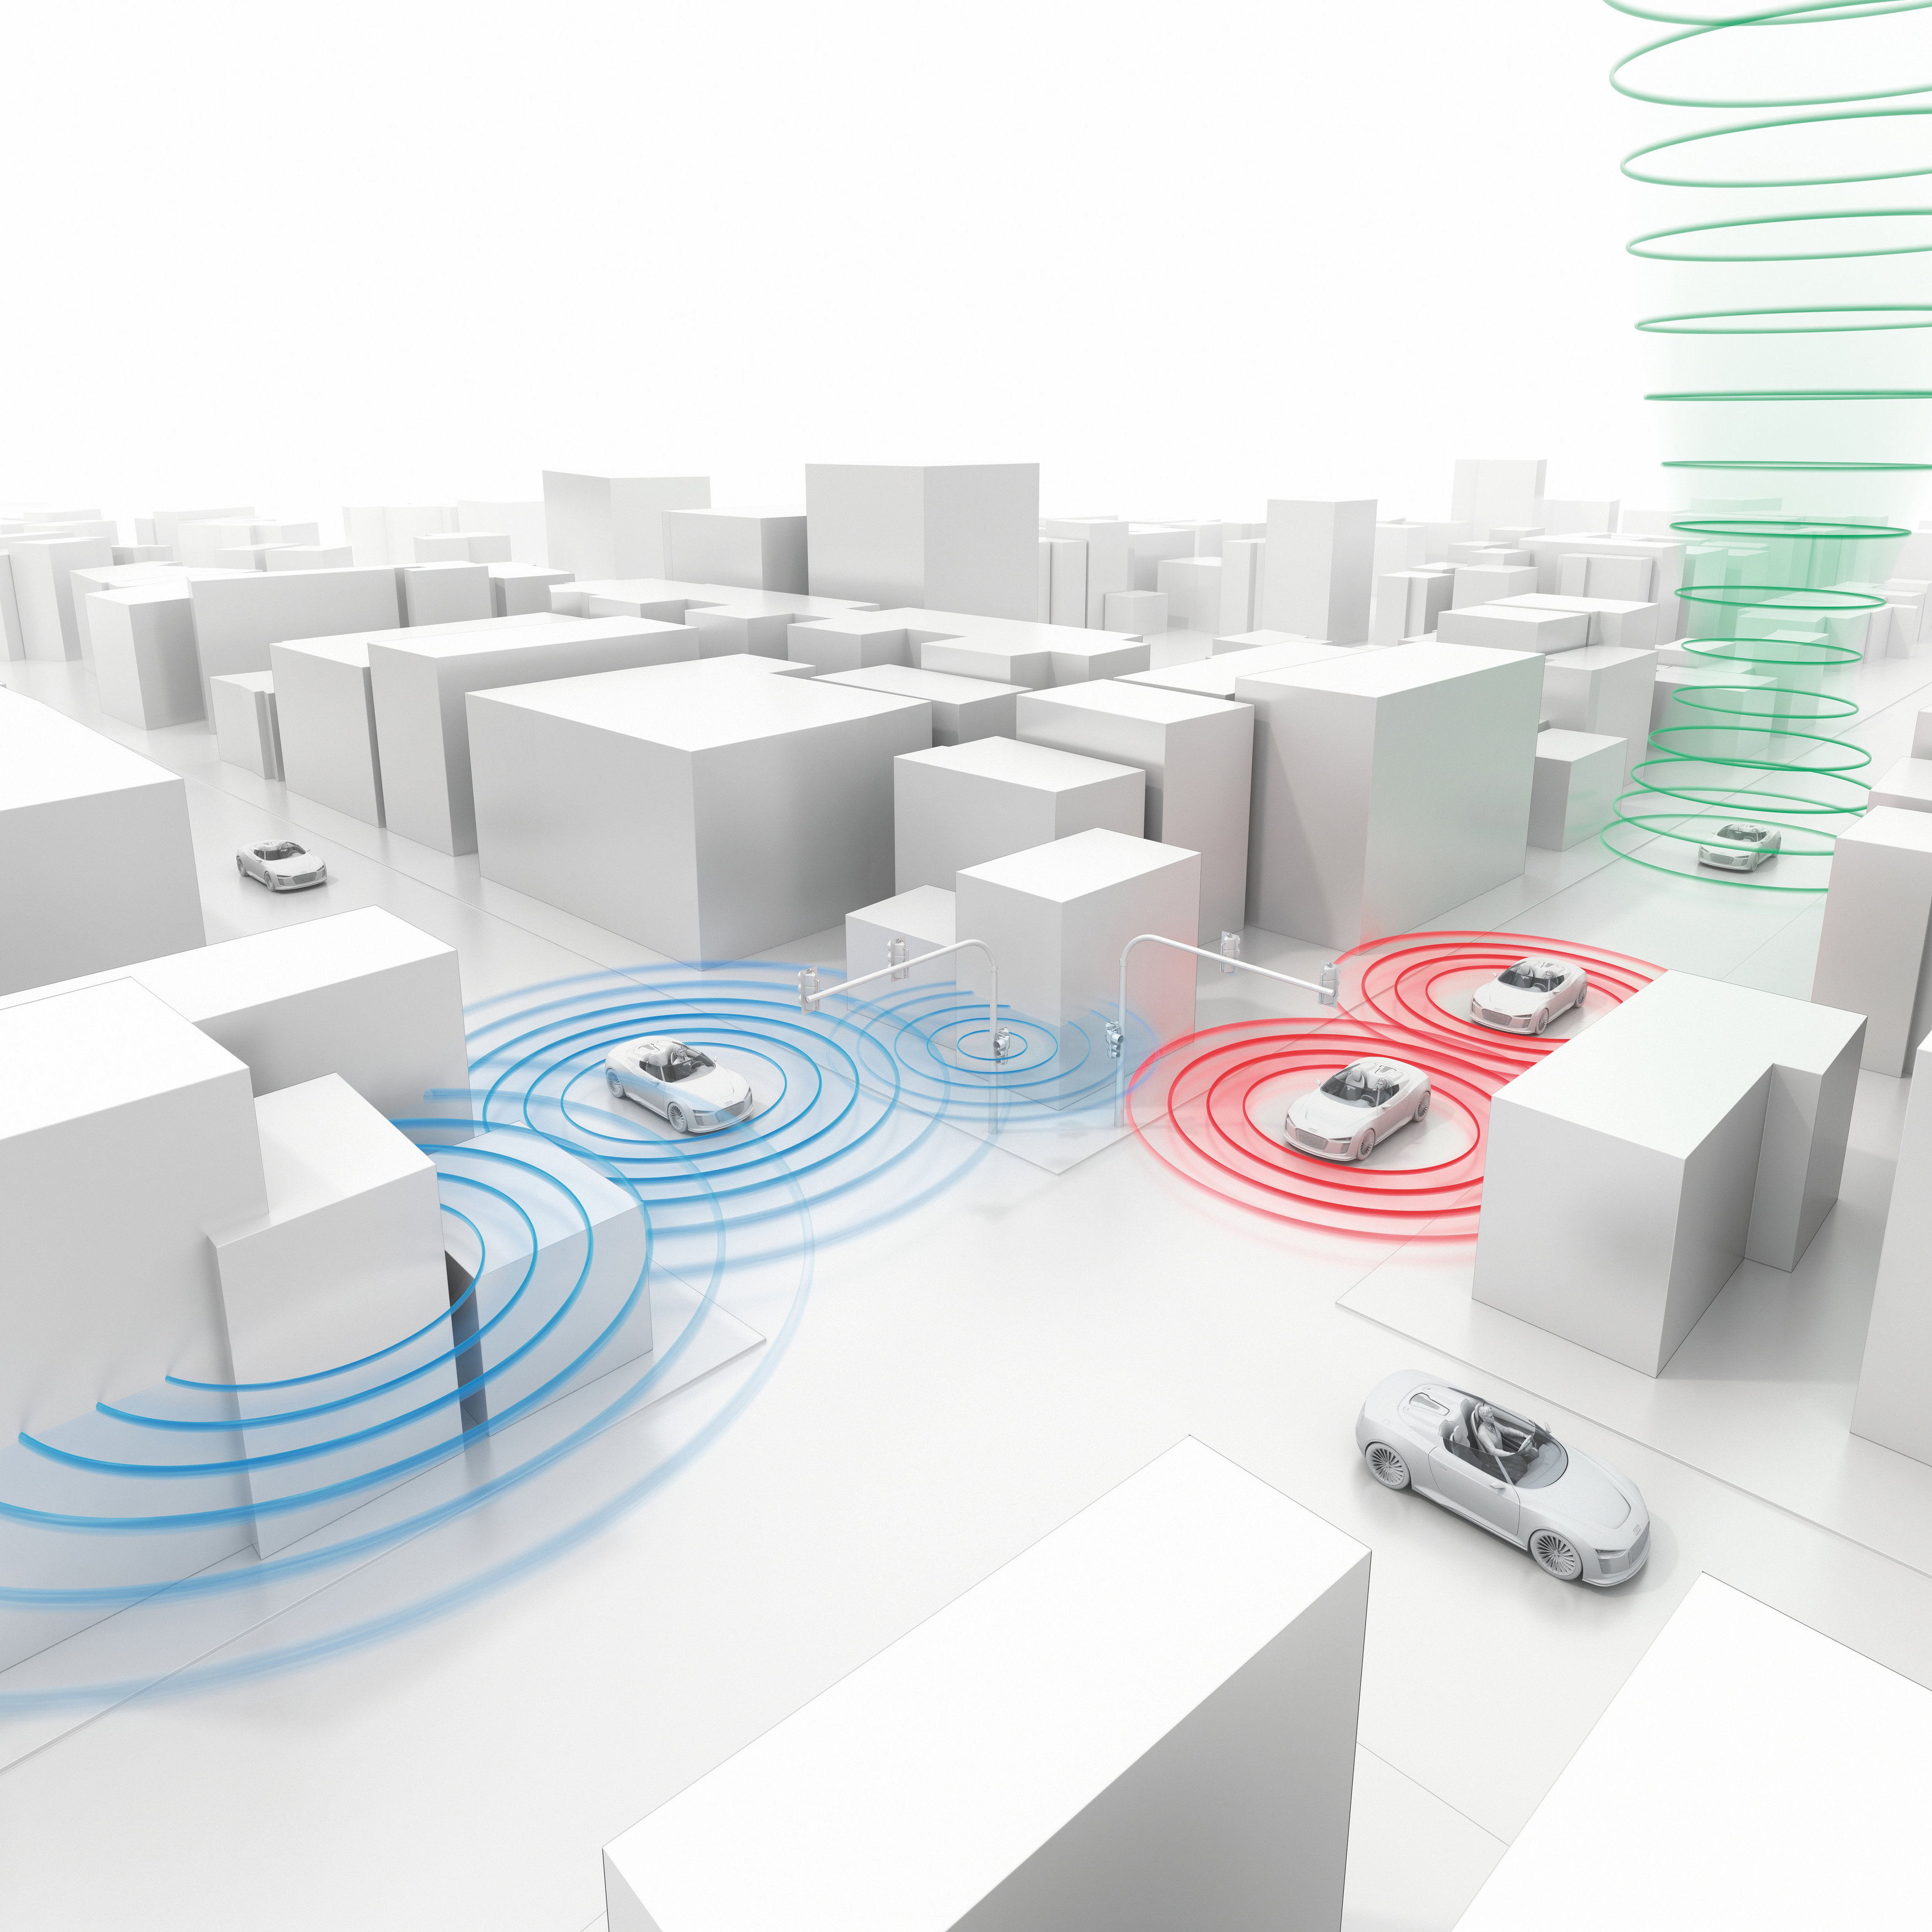 The future is HERE: Tomorrowâ??s mobility begins with real-time